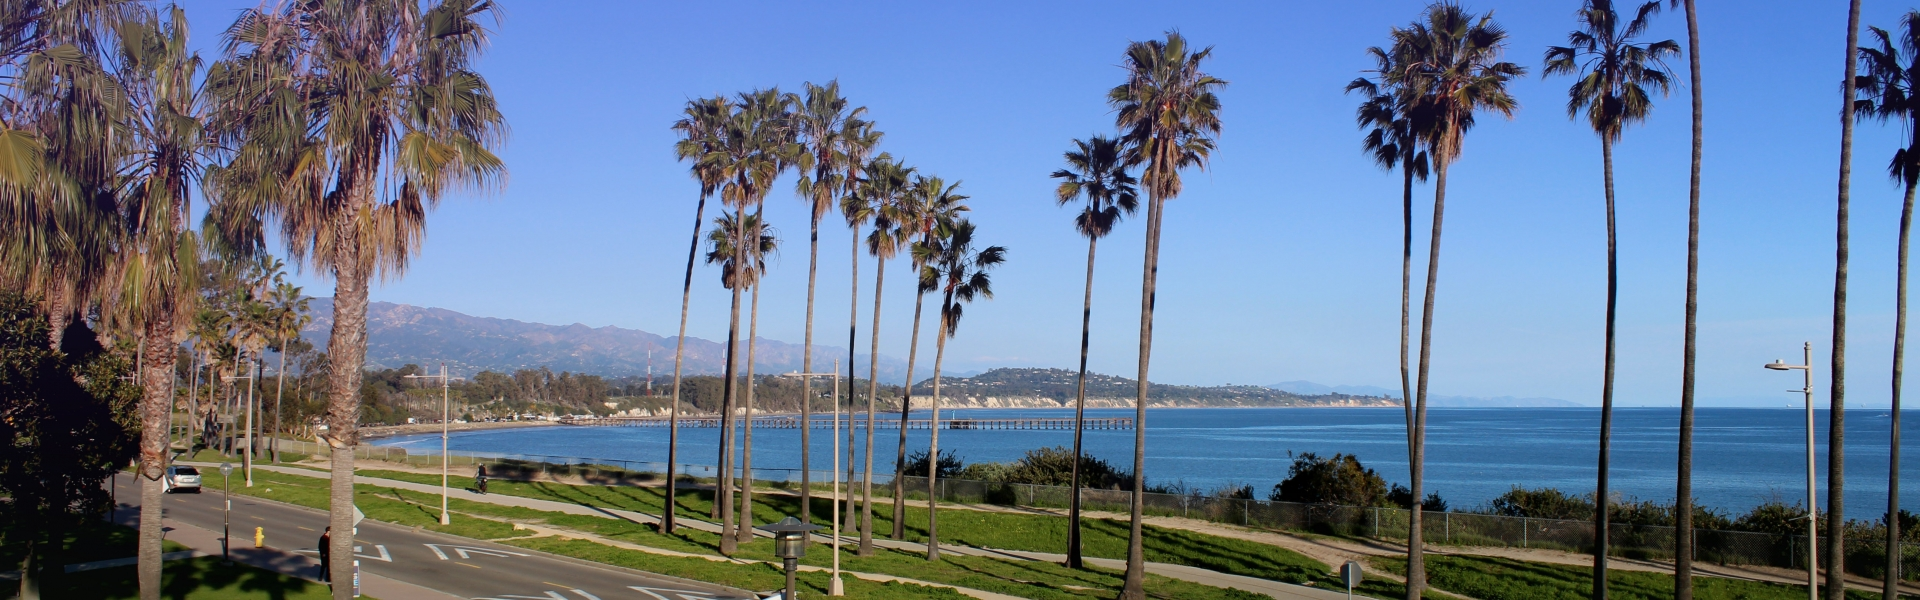 View from Bren Hall of ocean and palm trees